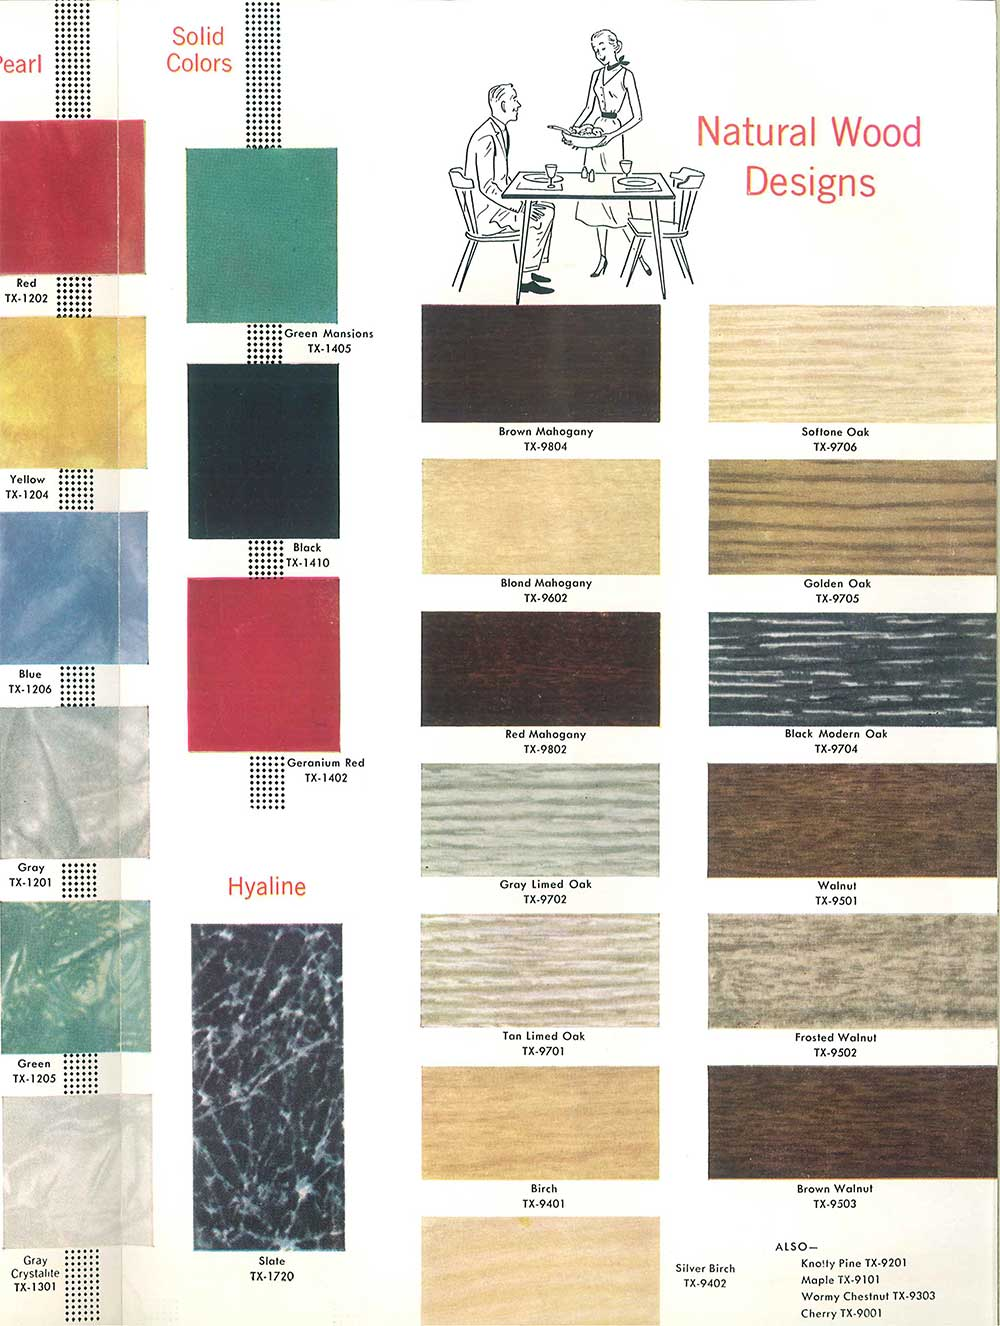 Ge Textolite Laminate Patterns From 1953 Retro Renovation